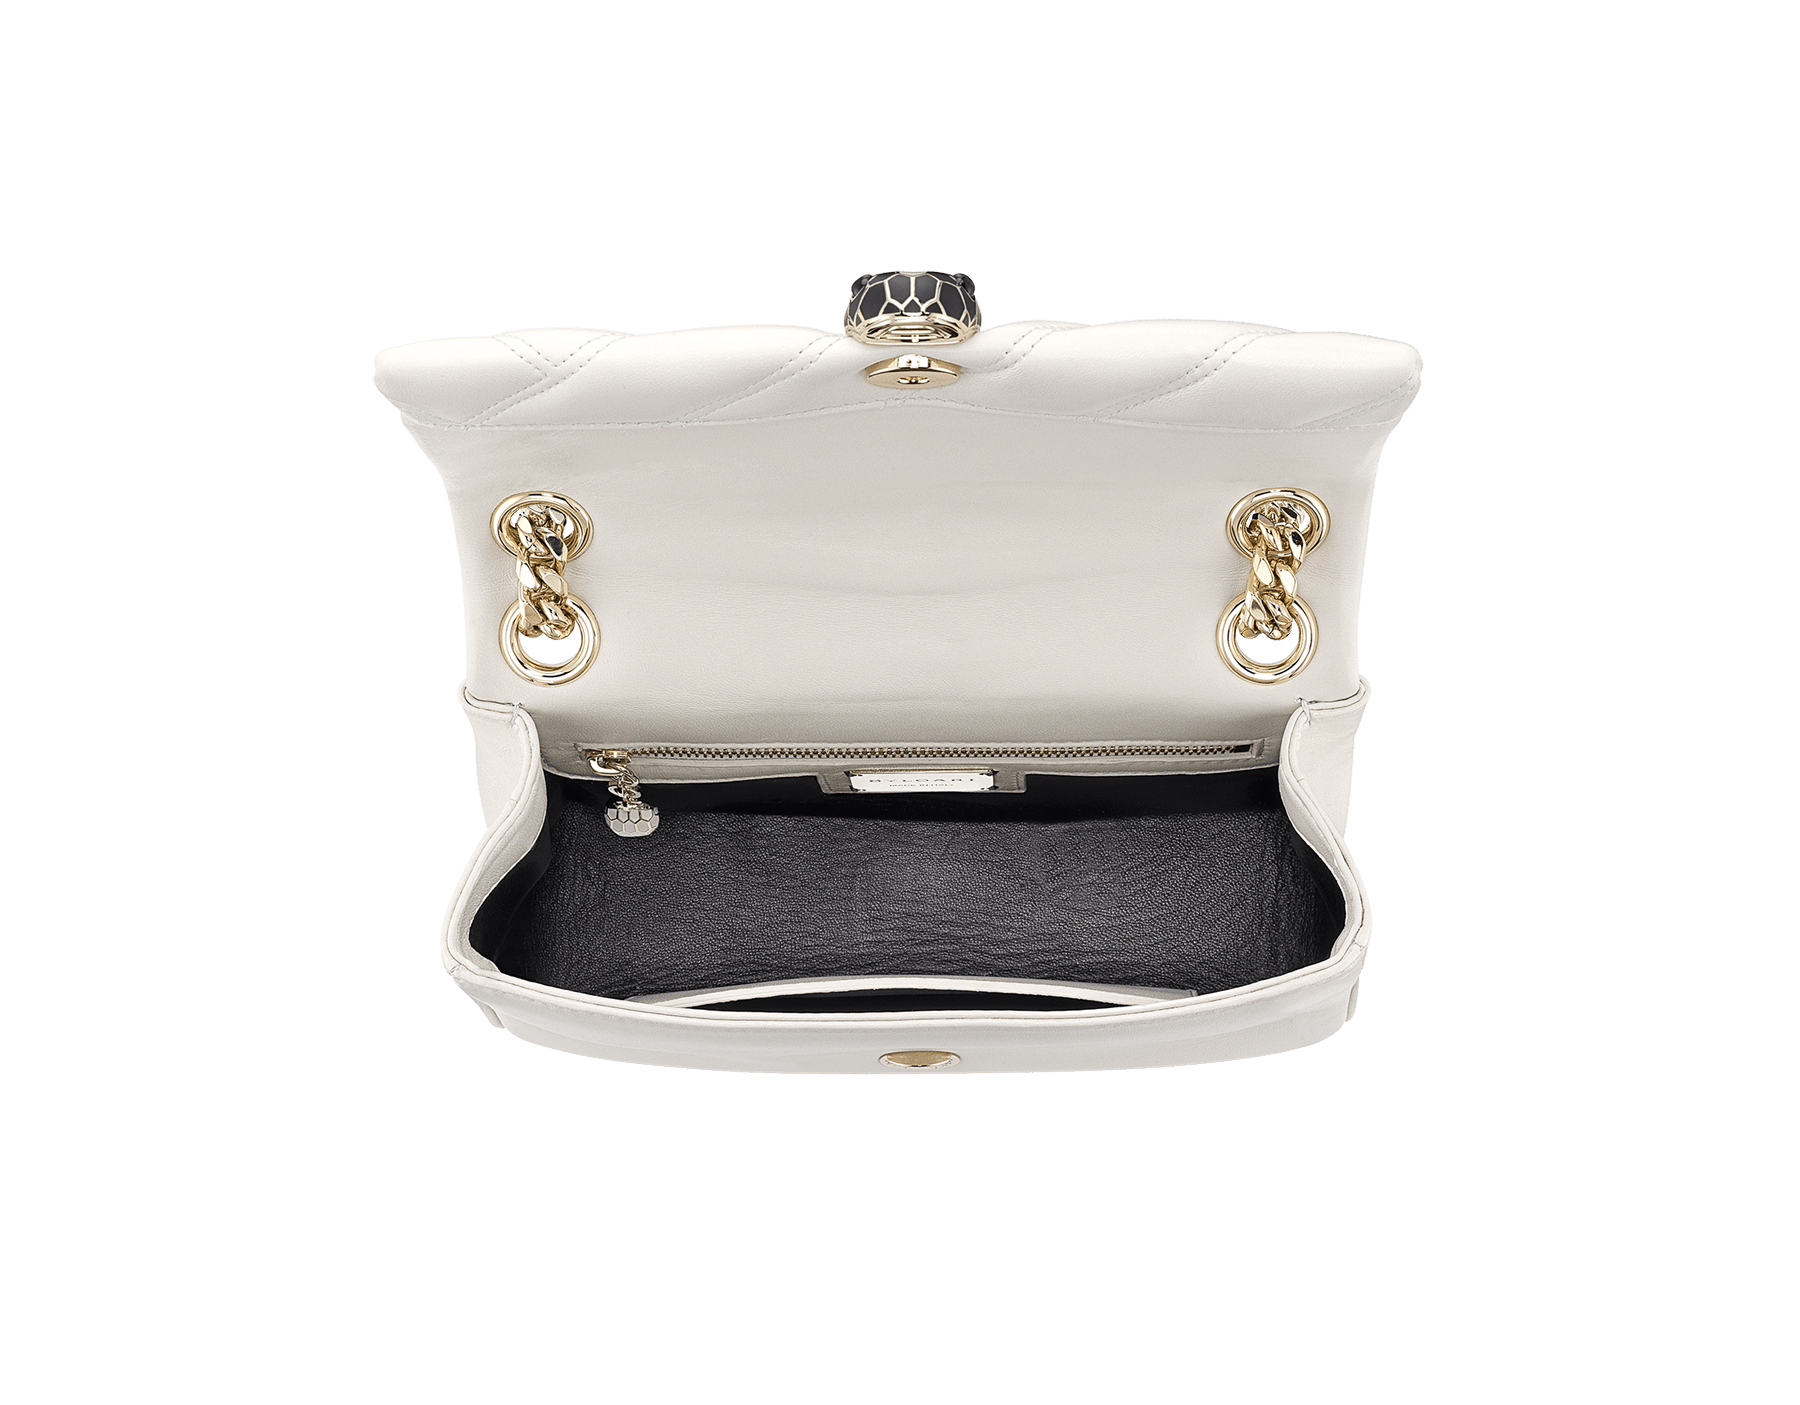 Serpenti Cabochon shoulder bag in soft matelassé white agate nappa leather with graphic motif and white agate calf leather. Snakehead closure in rose gold plated brass decorated with matte black and white enamel, and black onyx eyes. 287993 image 4